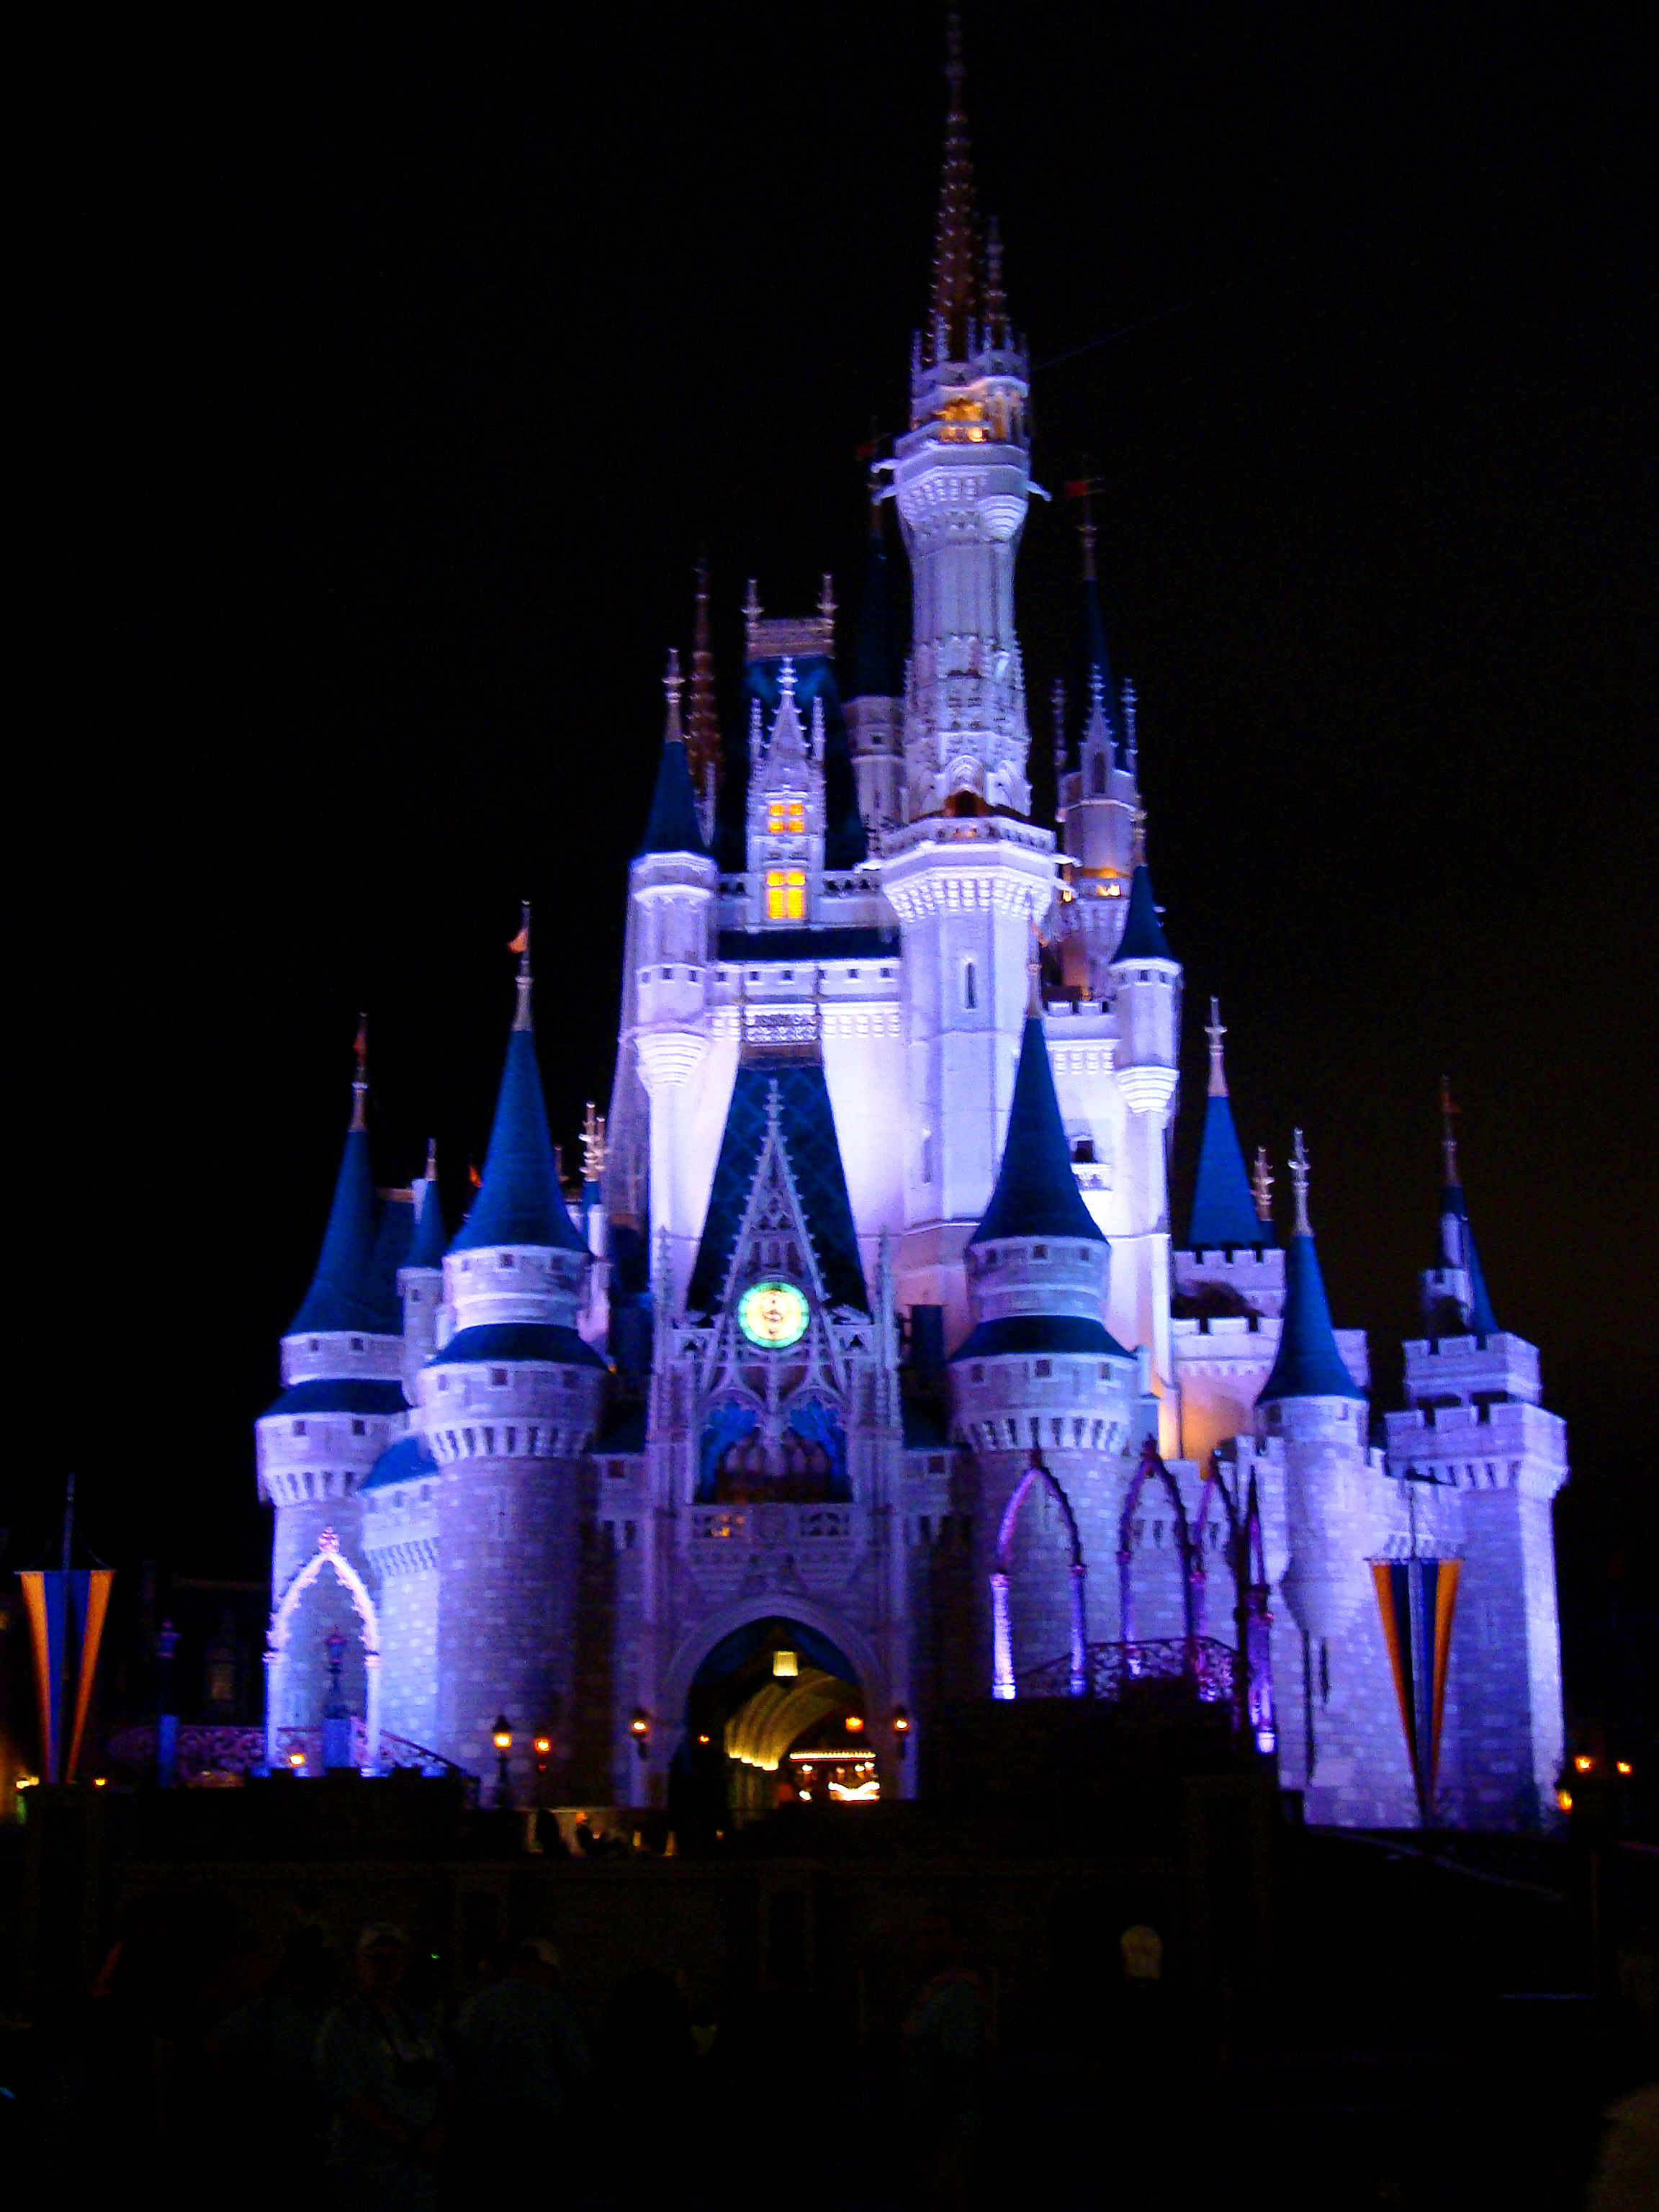 The Best Nighttime Attractions at Walt Disney World